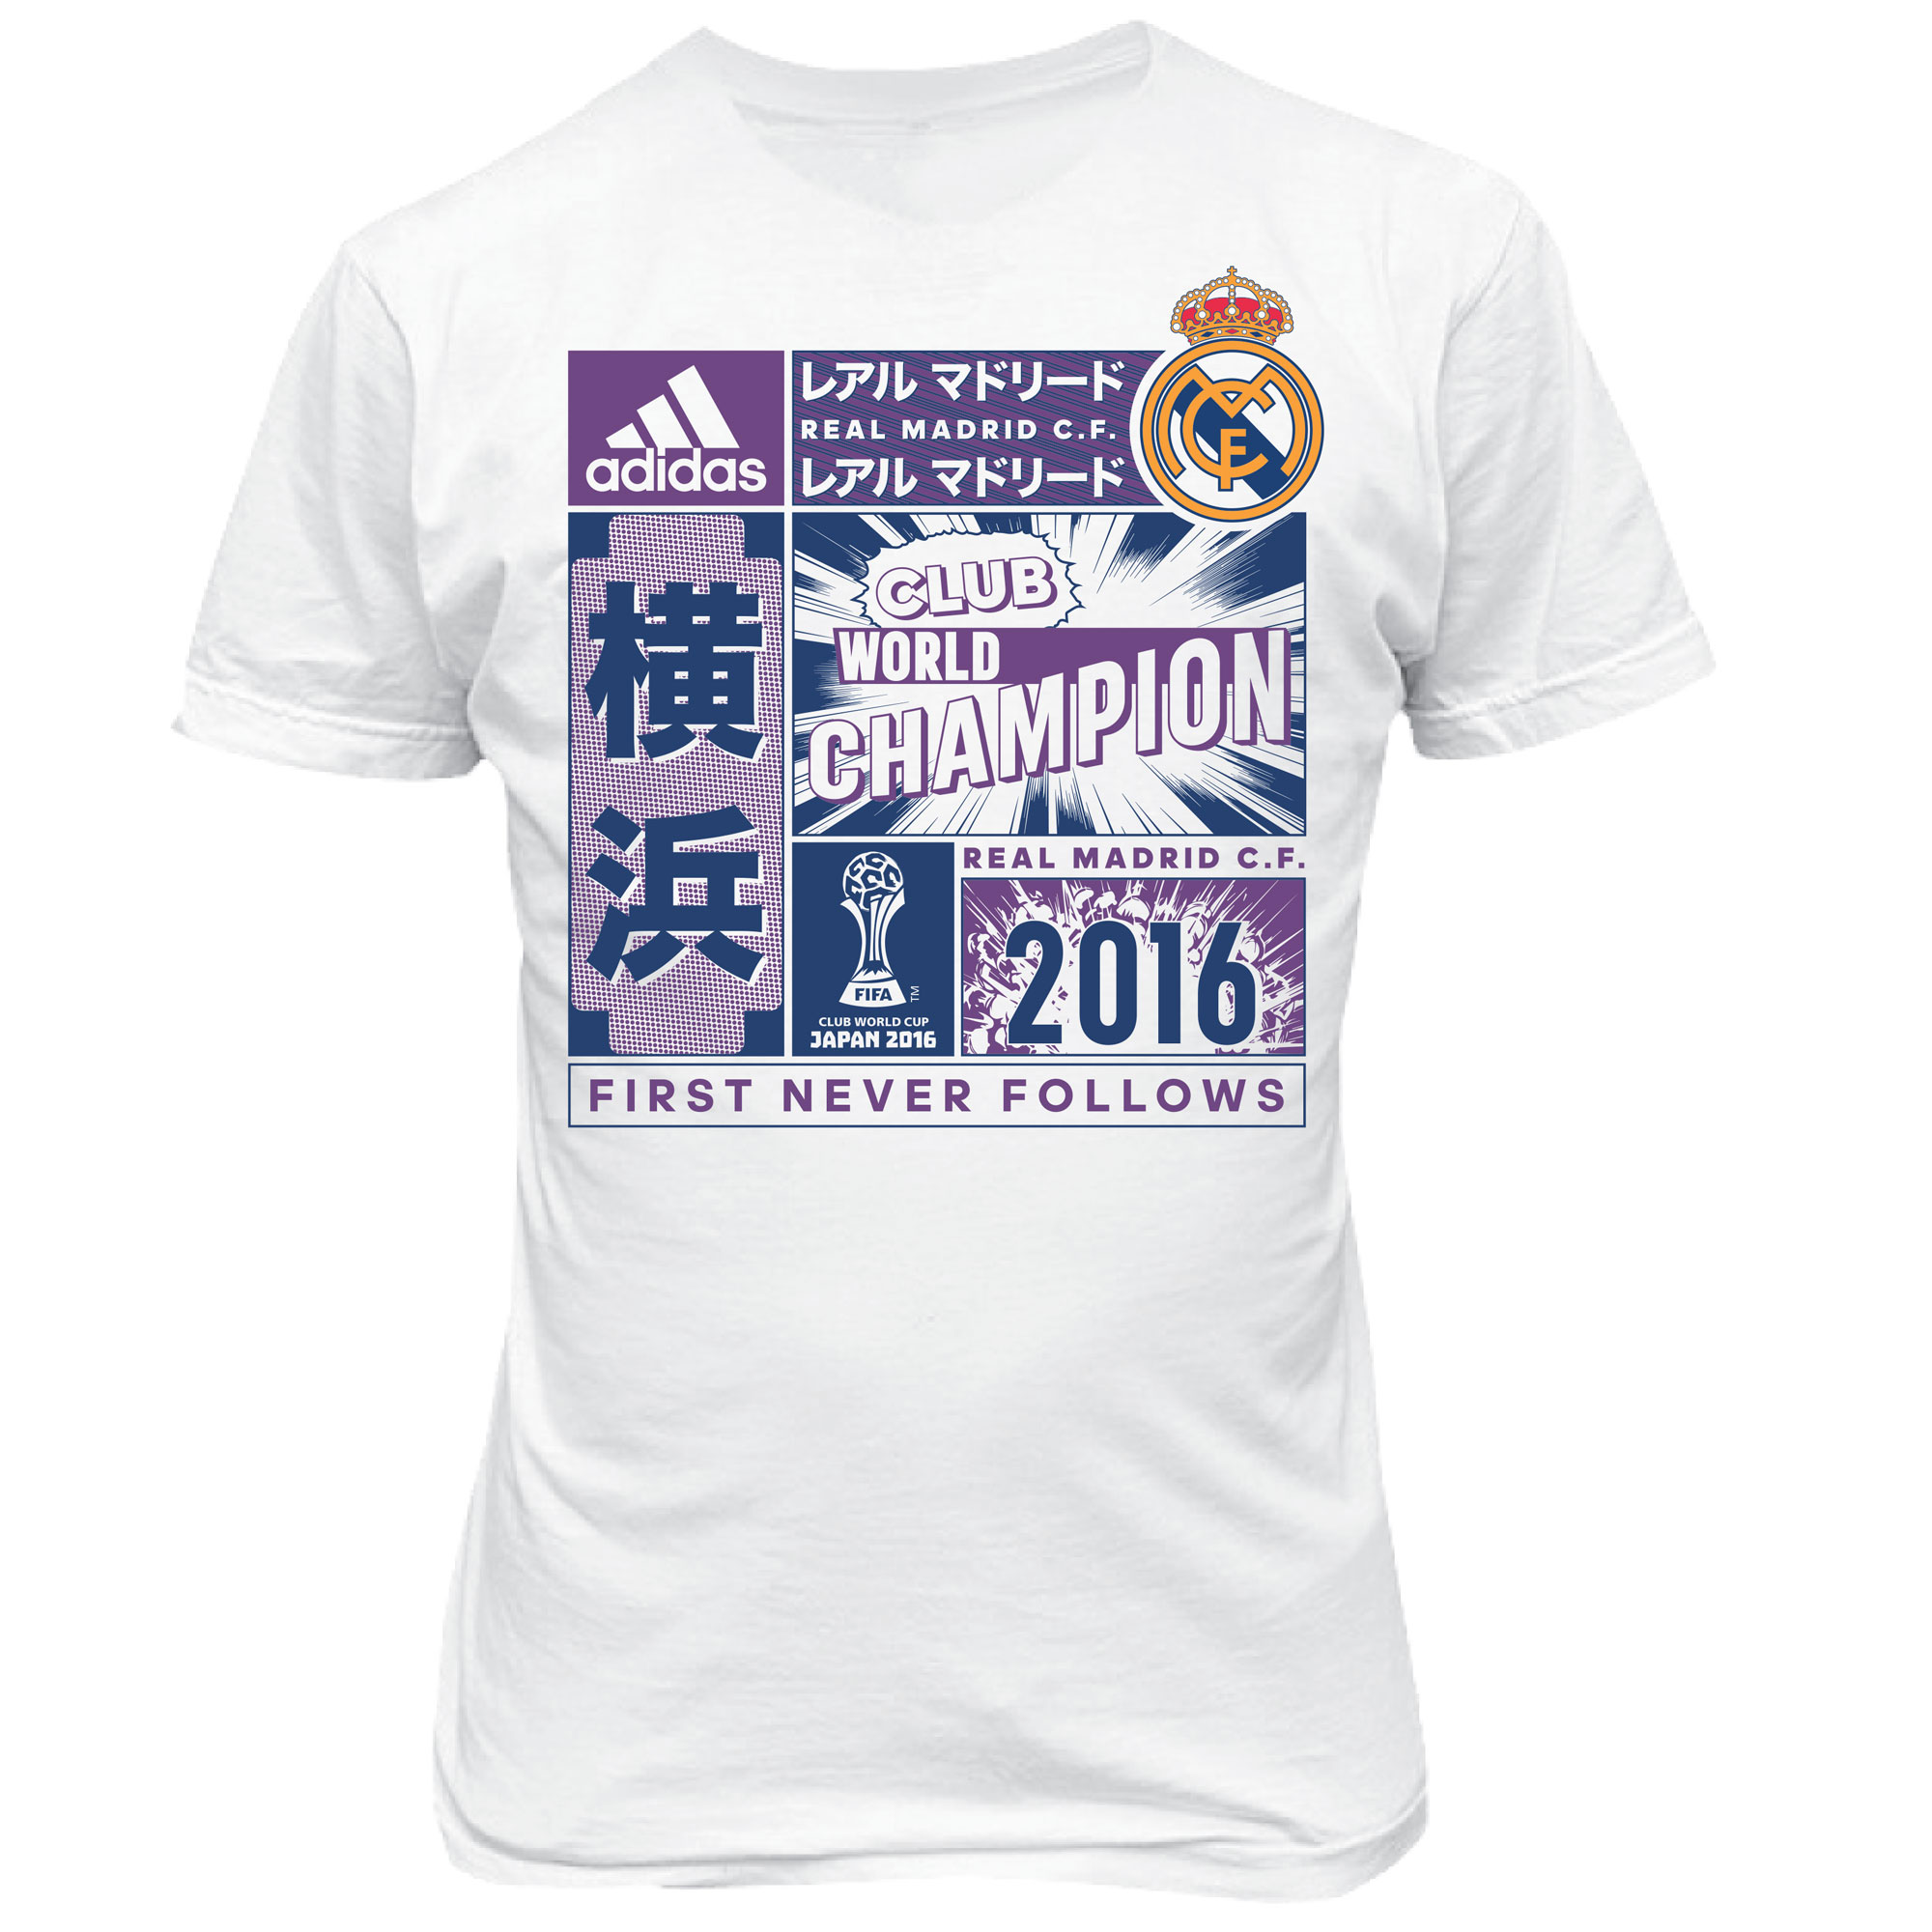 new concept ee85e b6692 adidas Real Madrid Fifa Club World Cup Champions 2016 T-Shirt - White -  Kids, White